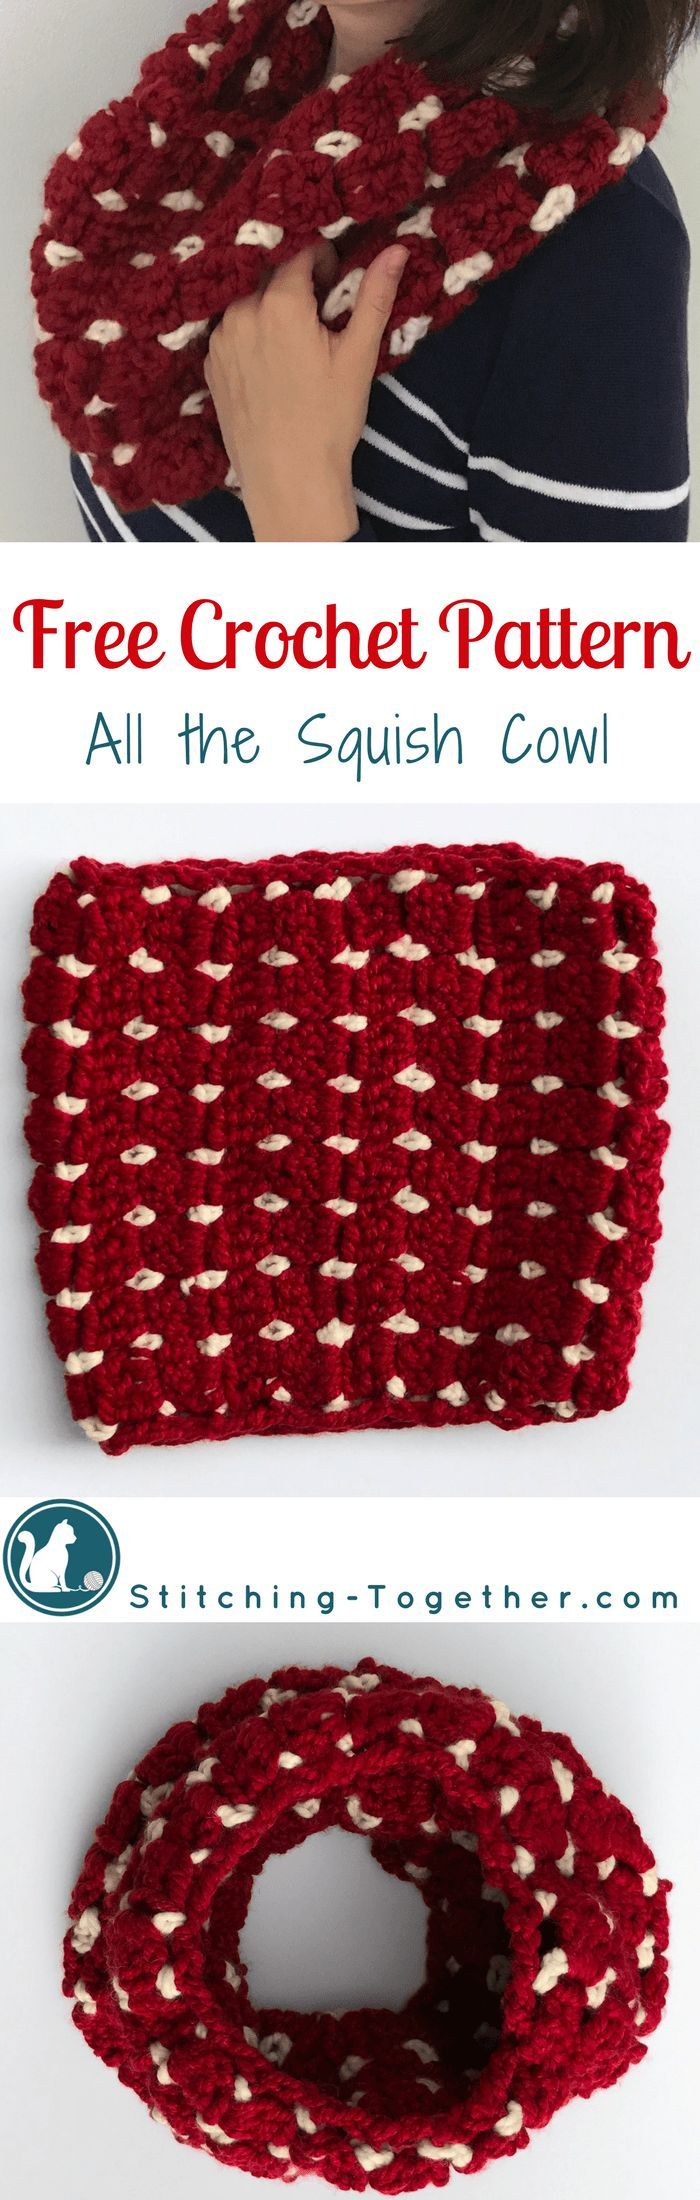 Squishy and warm crochet cowl | Free pattern for an easy crochet cowl by Stitching Together.